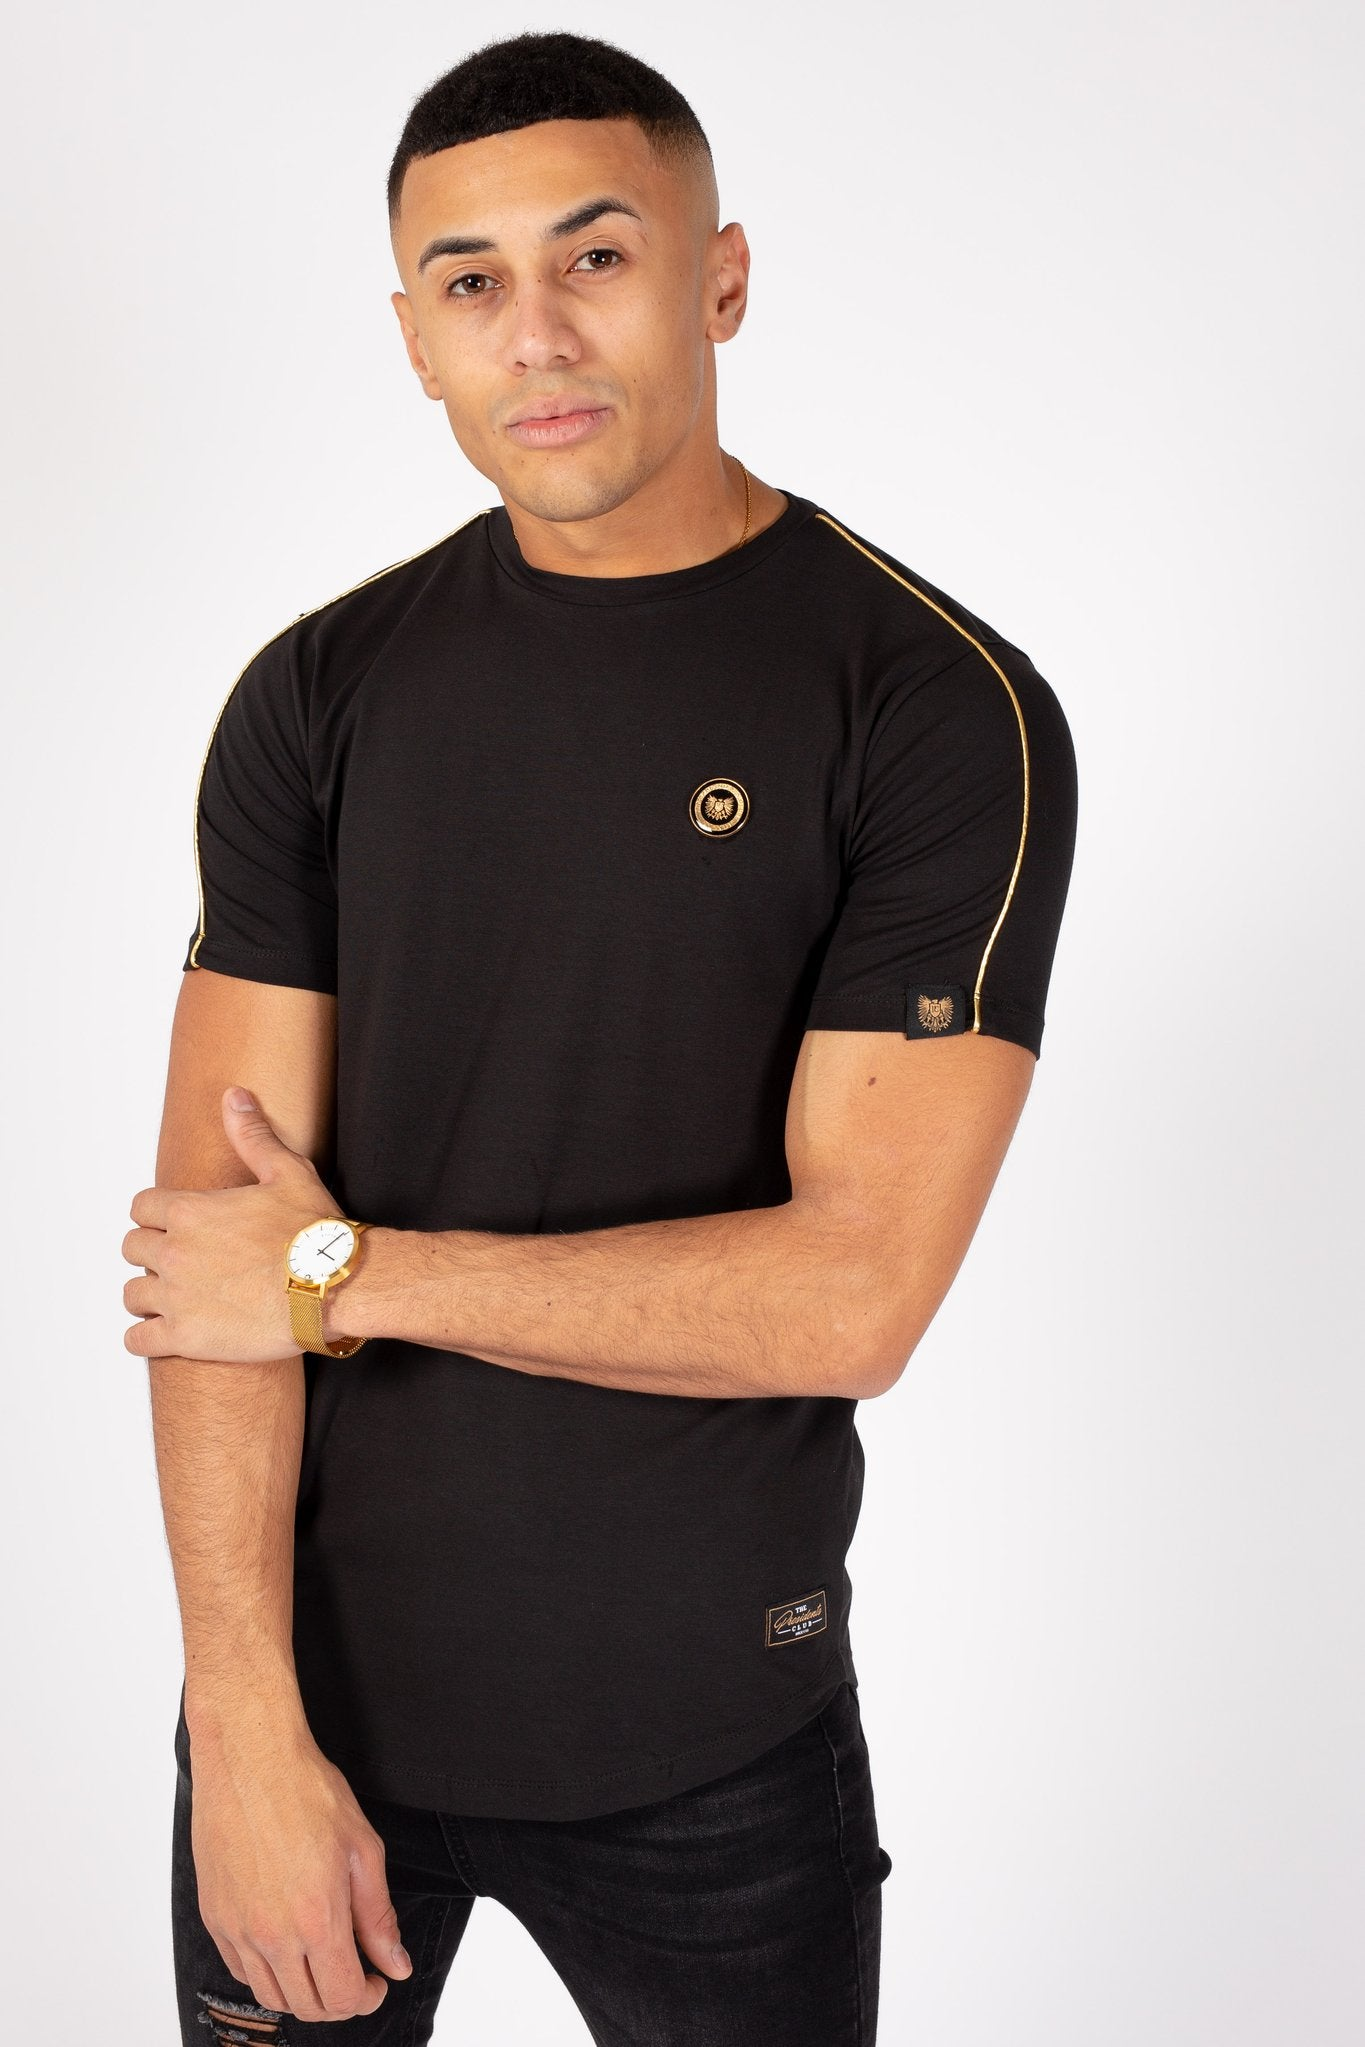 Crest T-Shirt in Black